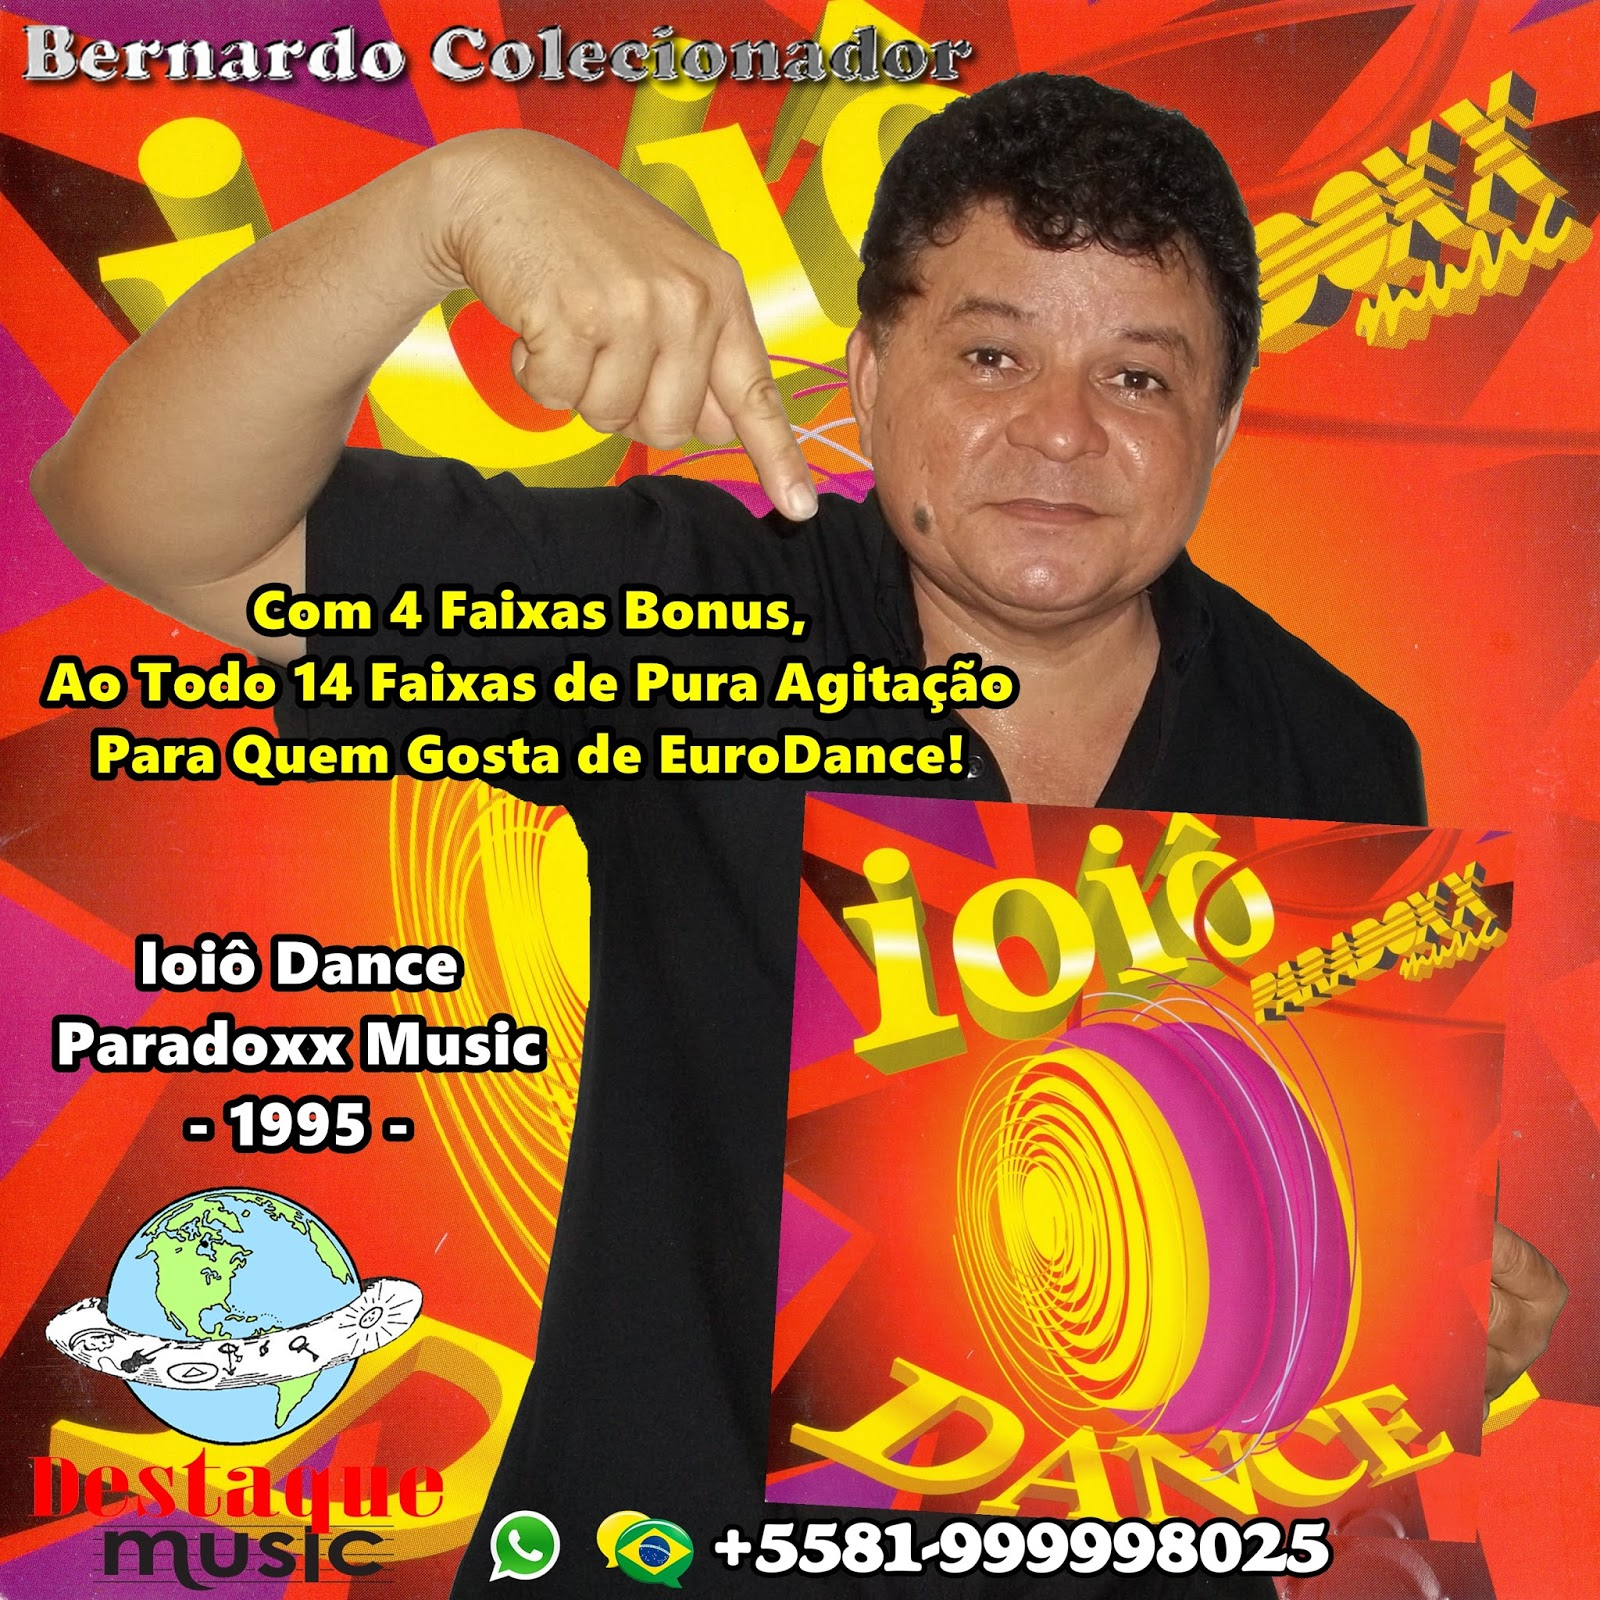 cd ioio dance